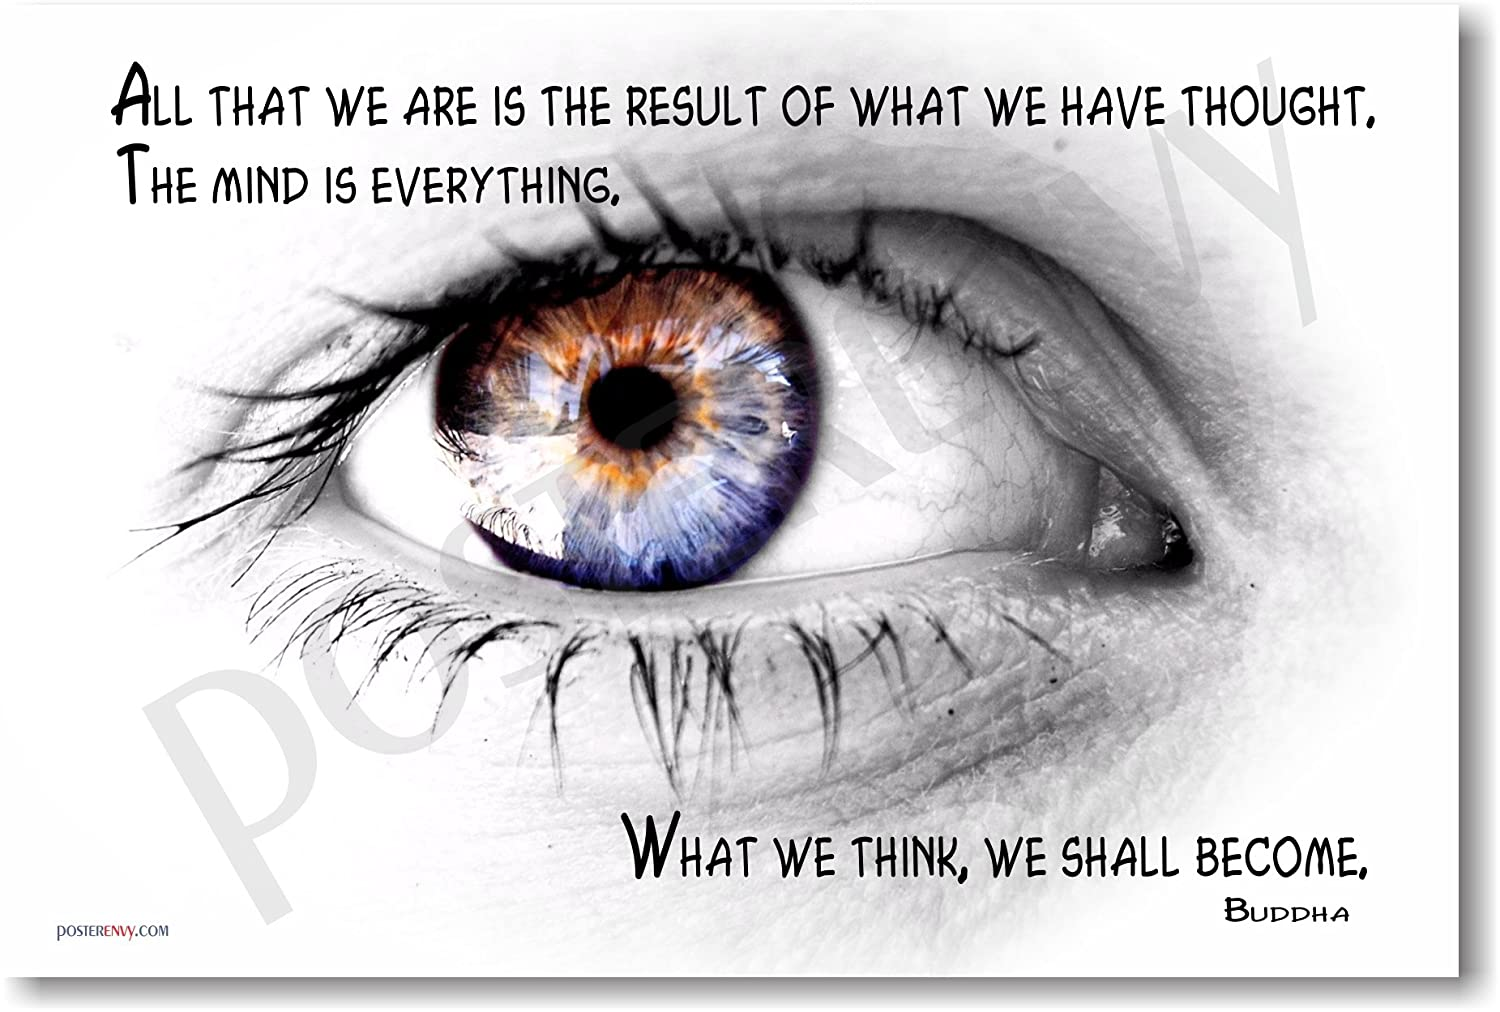 All That We Are Is the Result of What We Have Thought. The Mind Is Everything. What We Think, We Shall Become.